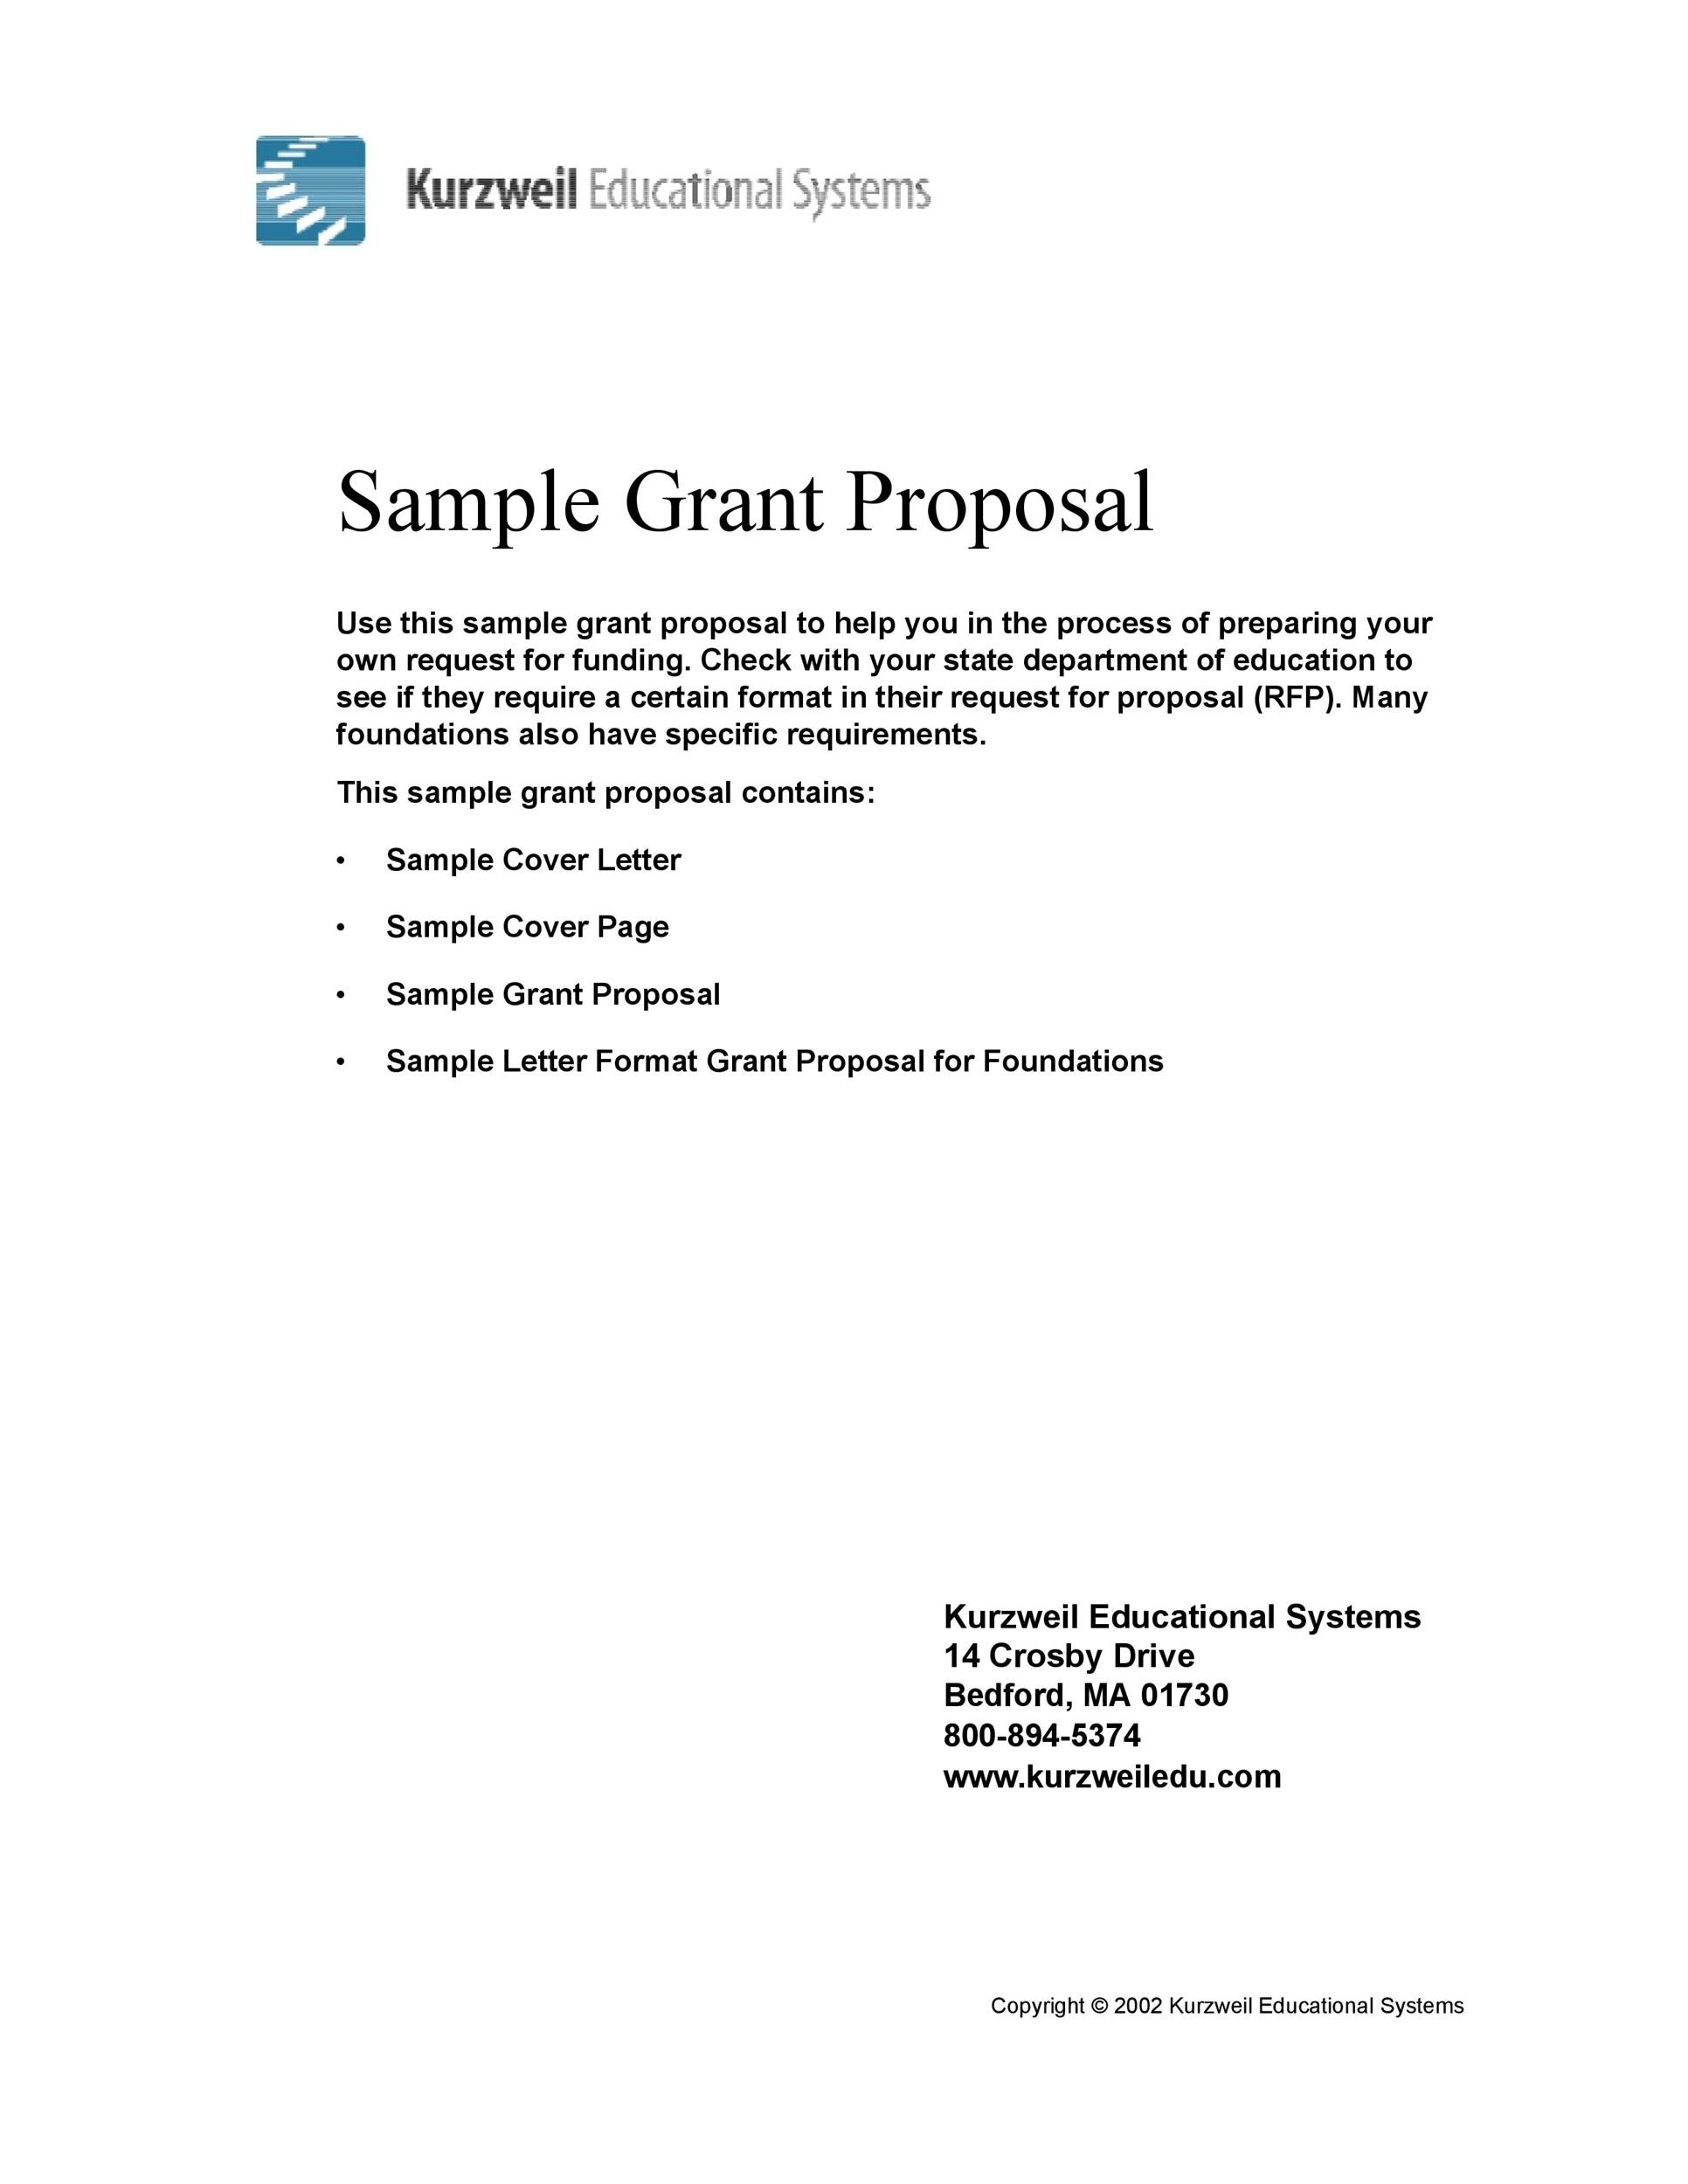 Sample Letter Of Proposal For Funding. Printable grant proposal template 20 40  Grant Proposal Templates NSF Non Profit Research